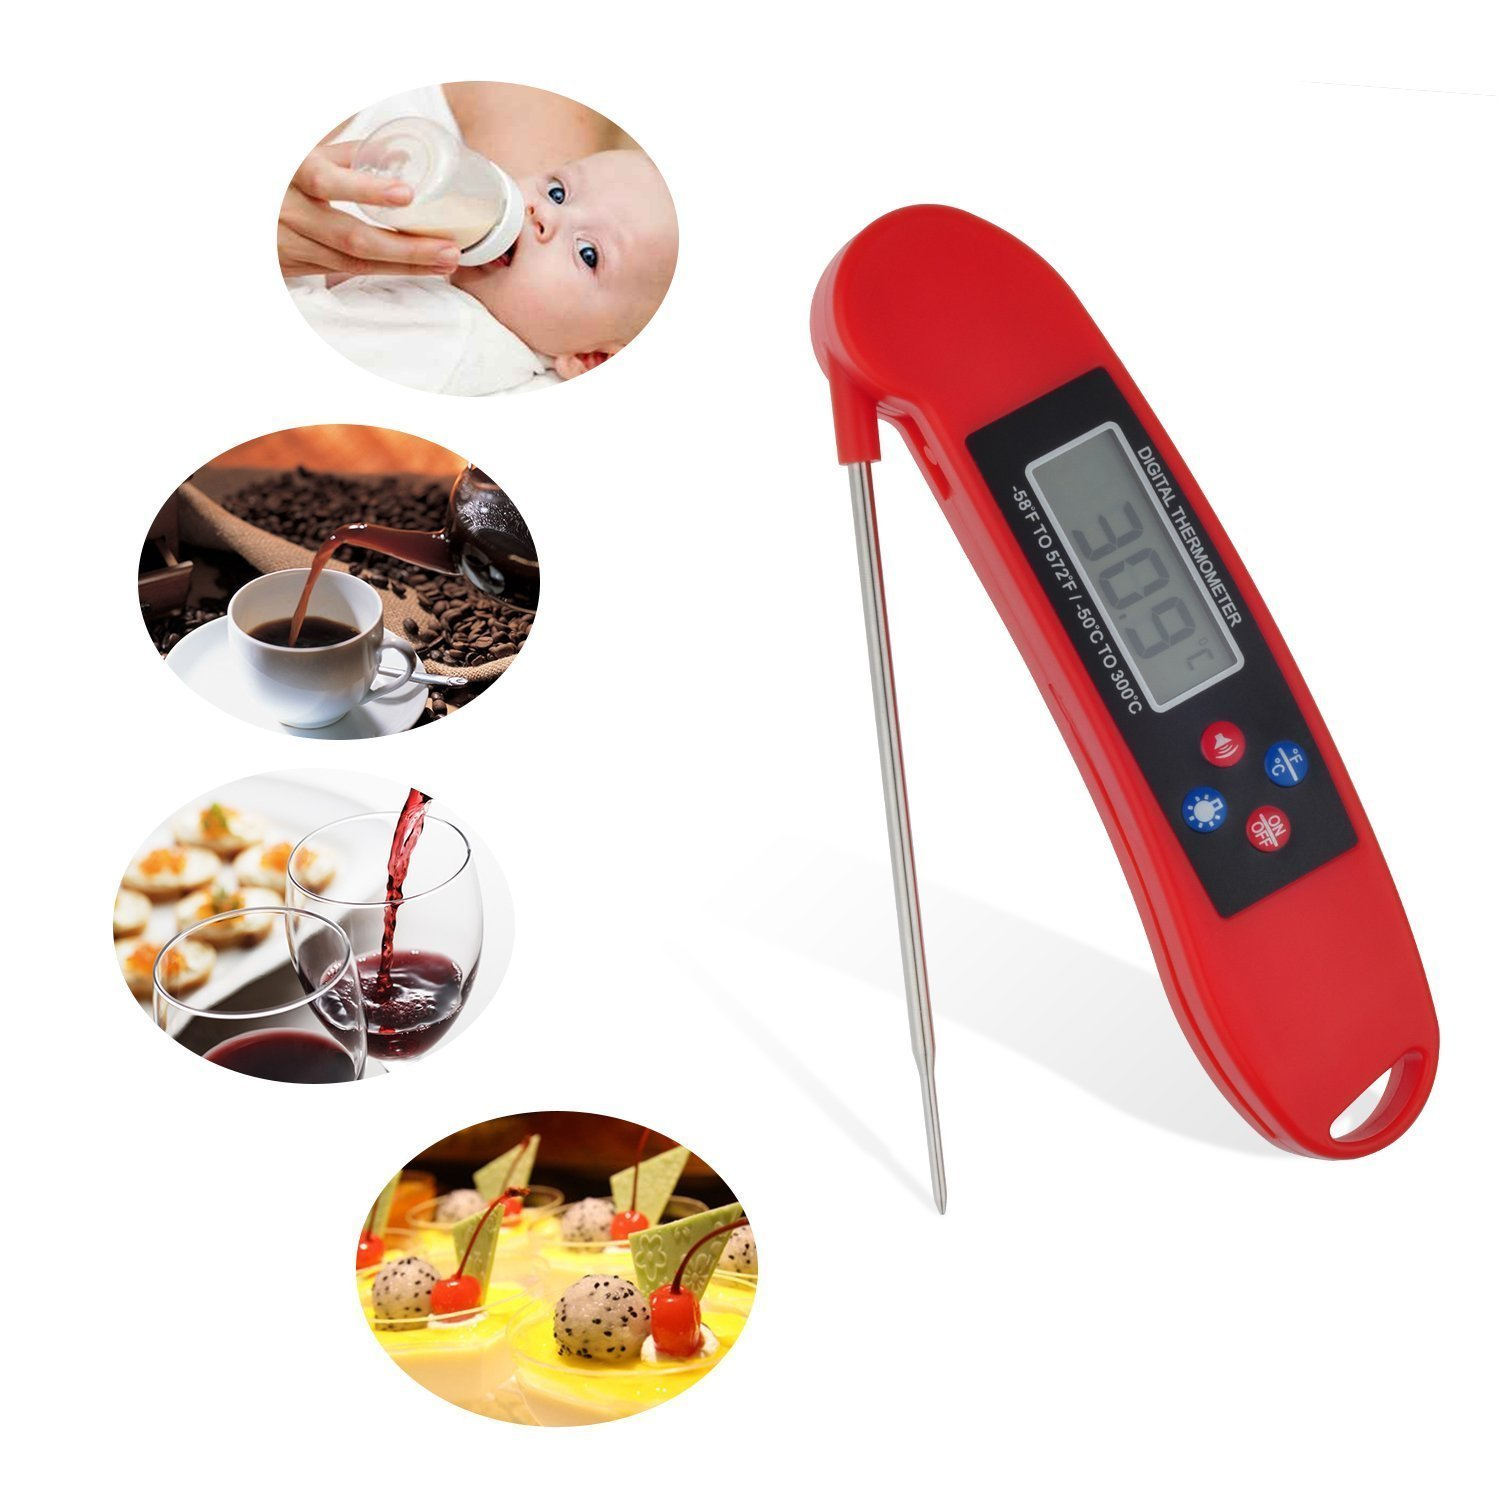 Meat Thermometer Instant Read Cooking Digital Food Probe Thermometer for Kitchen Cooking, Grill, BBQ, Milk, Candy (Red)